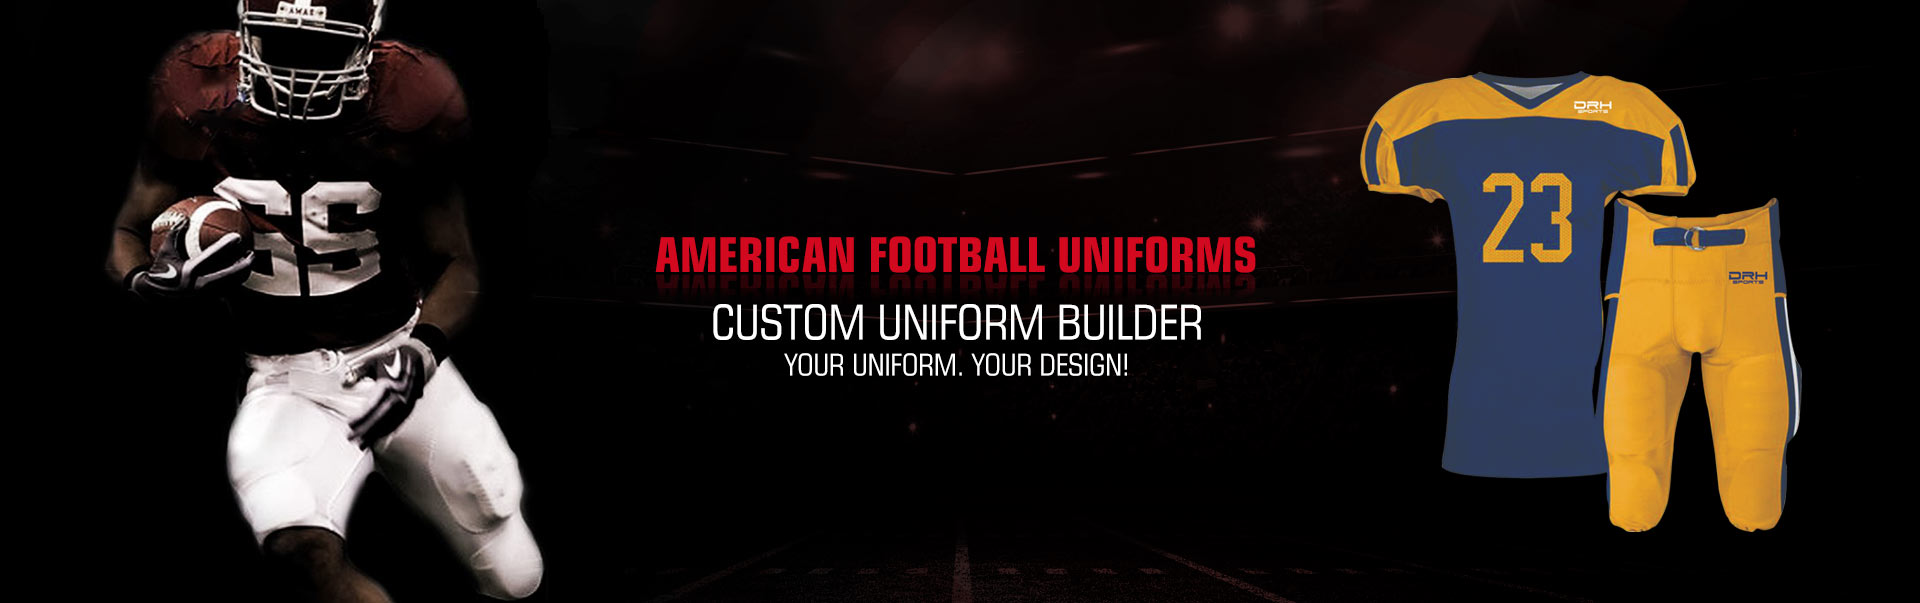 American Football Uniform Wholesaler, Suppliers in Sandy Springs